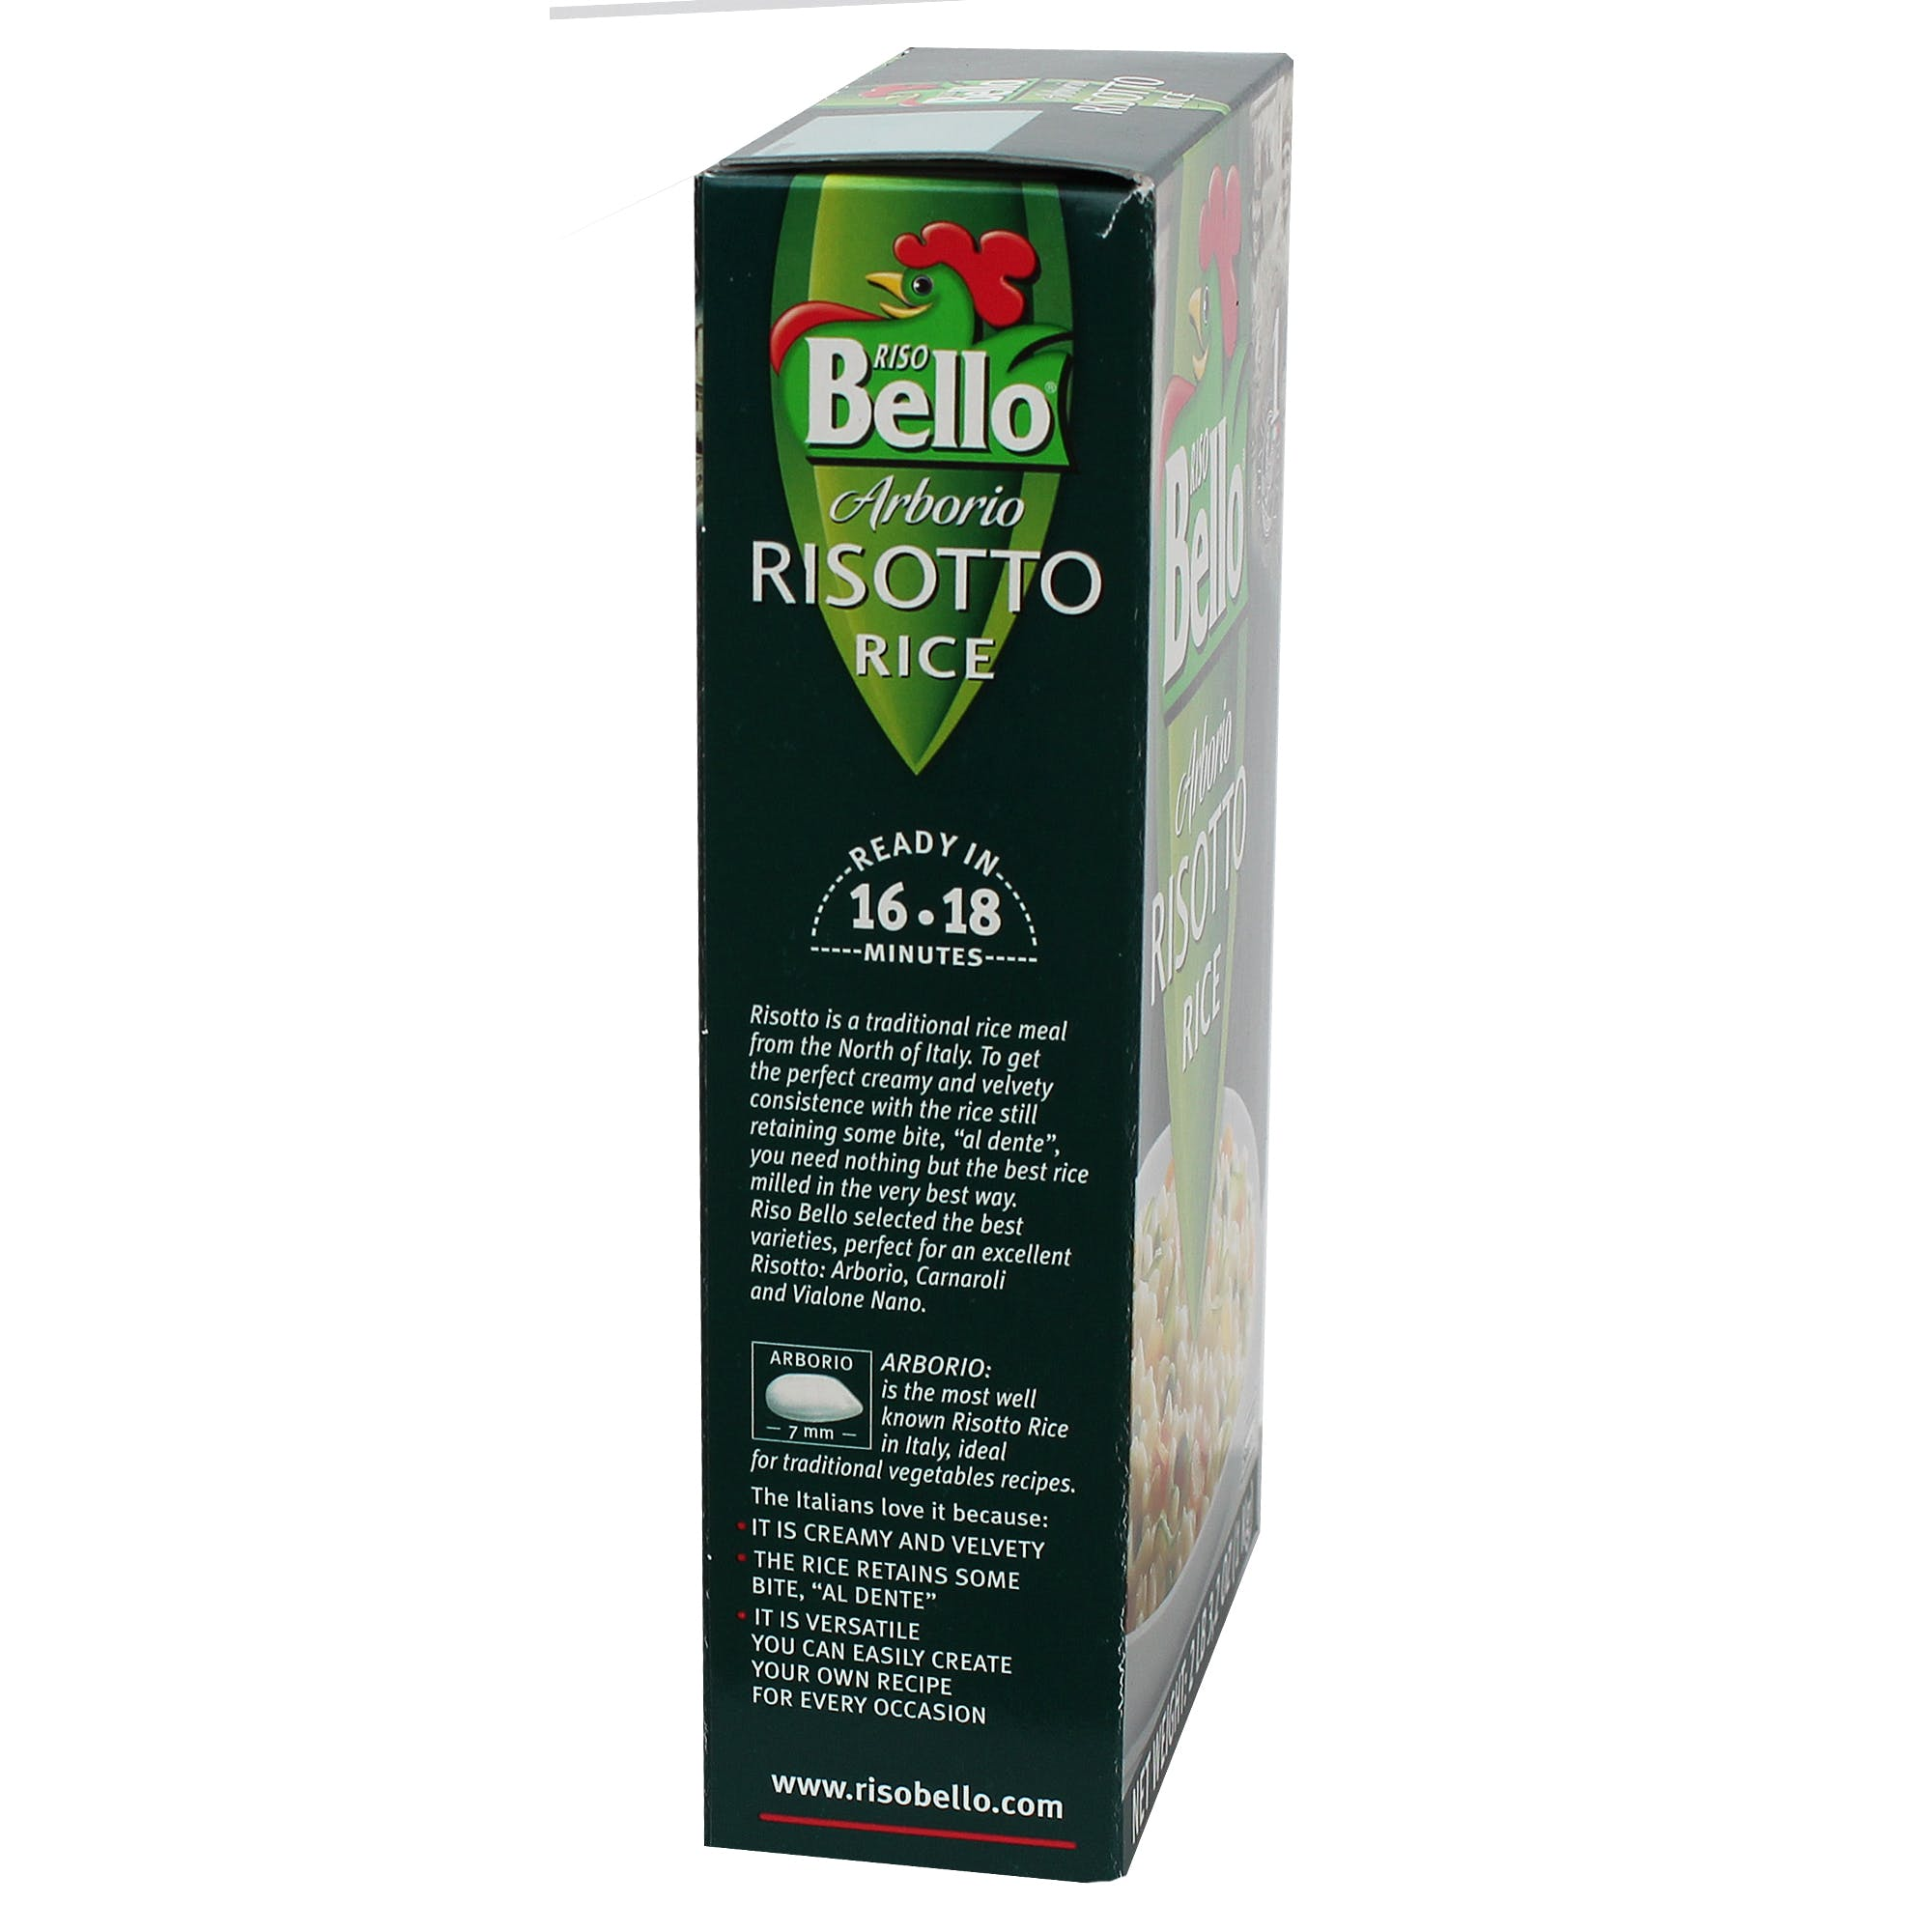 Arborio Risotto Rice Large - sold by M5 Corporation